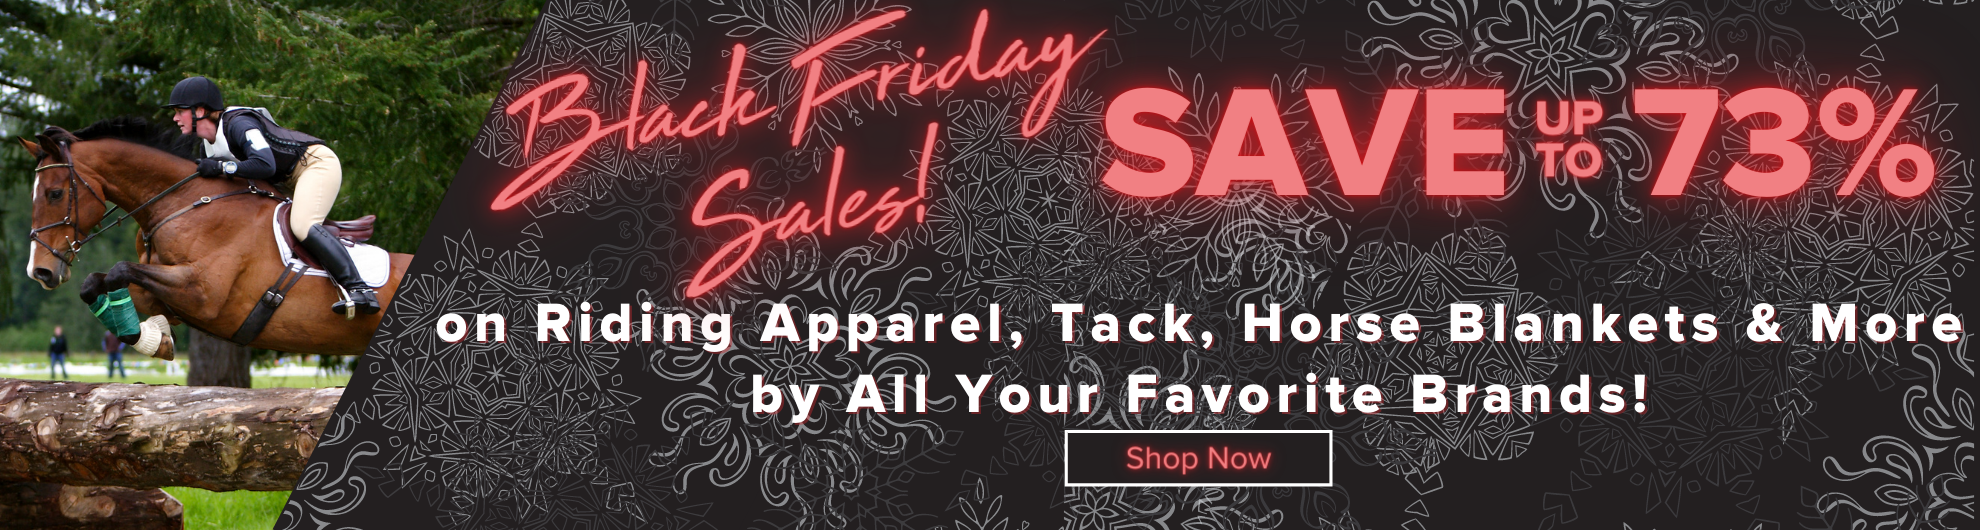 Shop Black Friday Sales